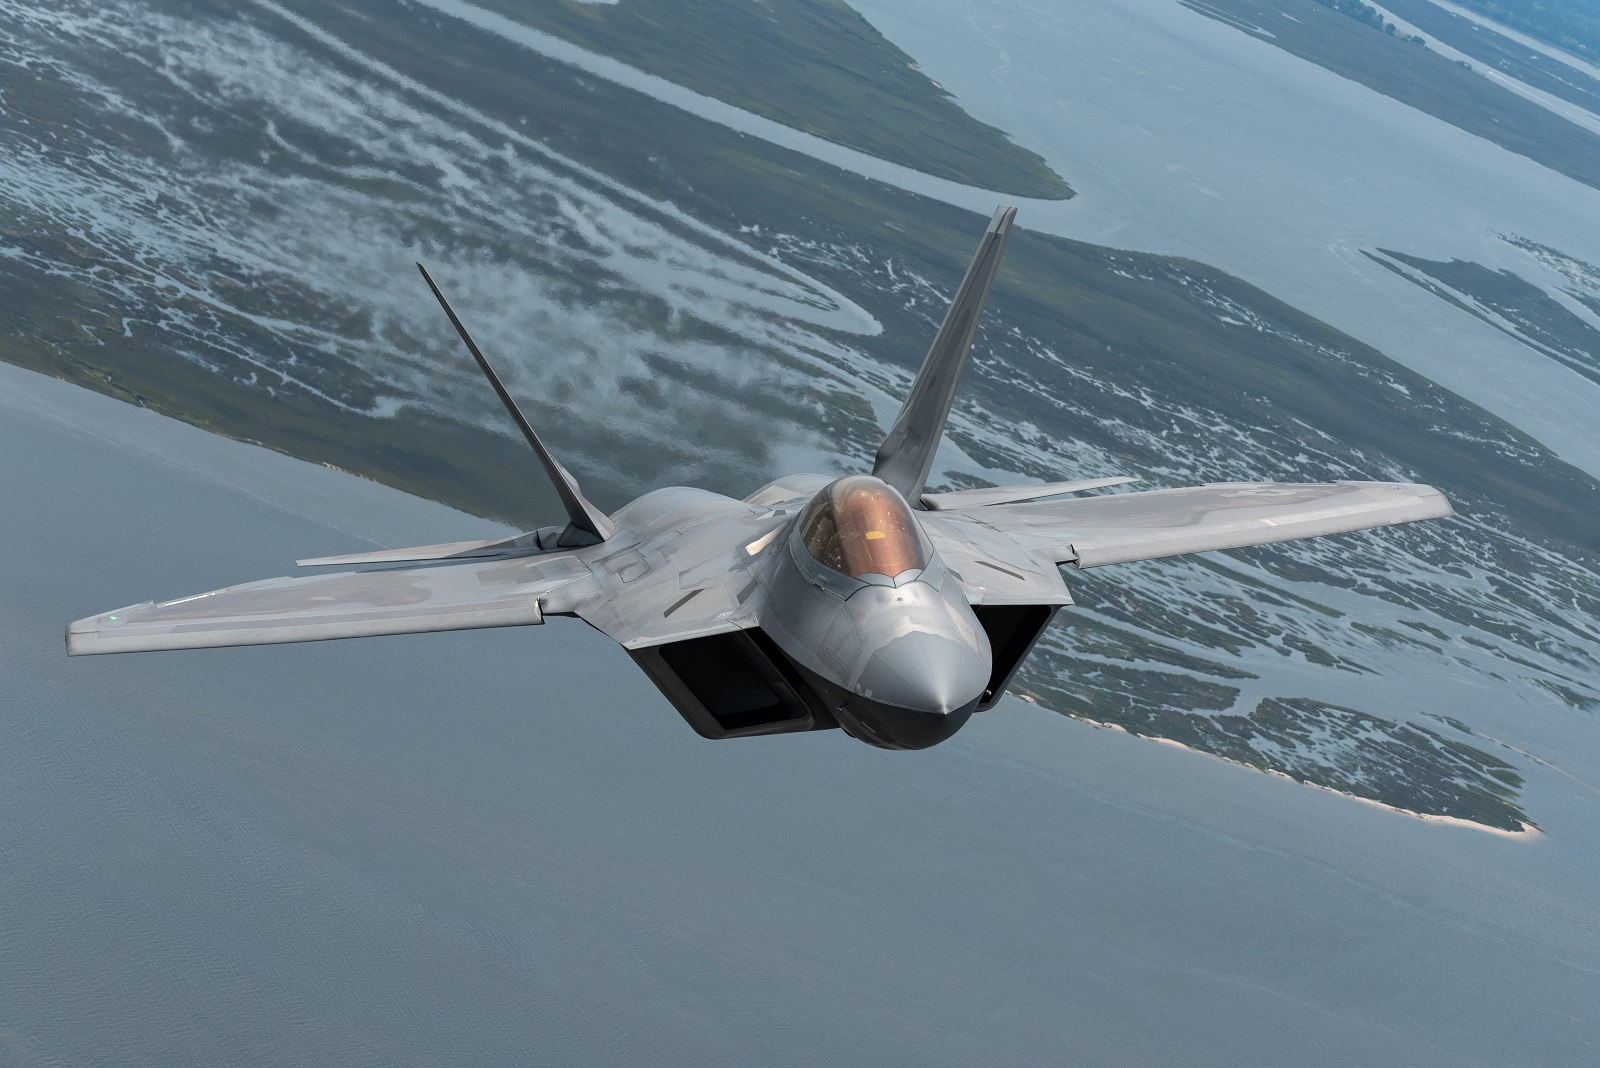 Put the F-22 and F-35 in a Museum: Japan's 6th Generation Fighter Will Be Epic